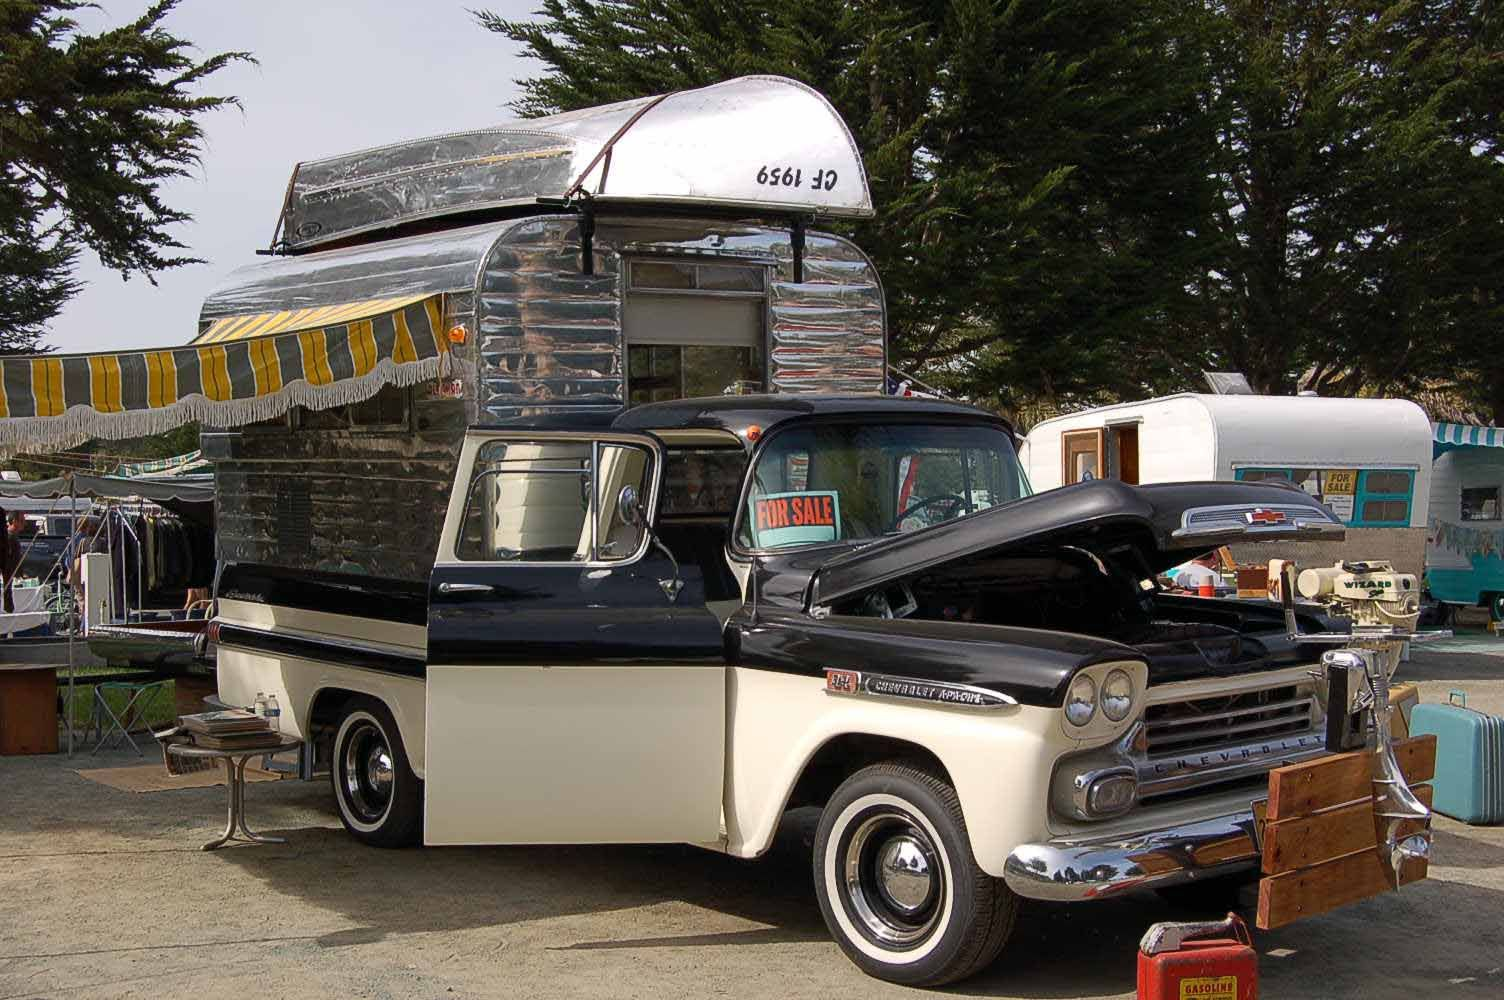 Vintage Truck Based Camper Trailers, from